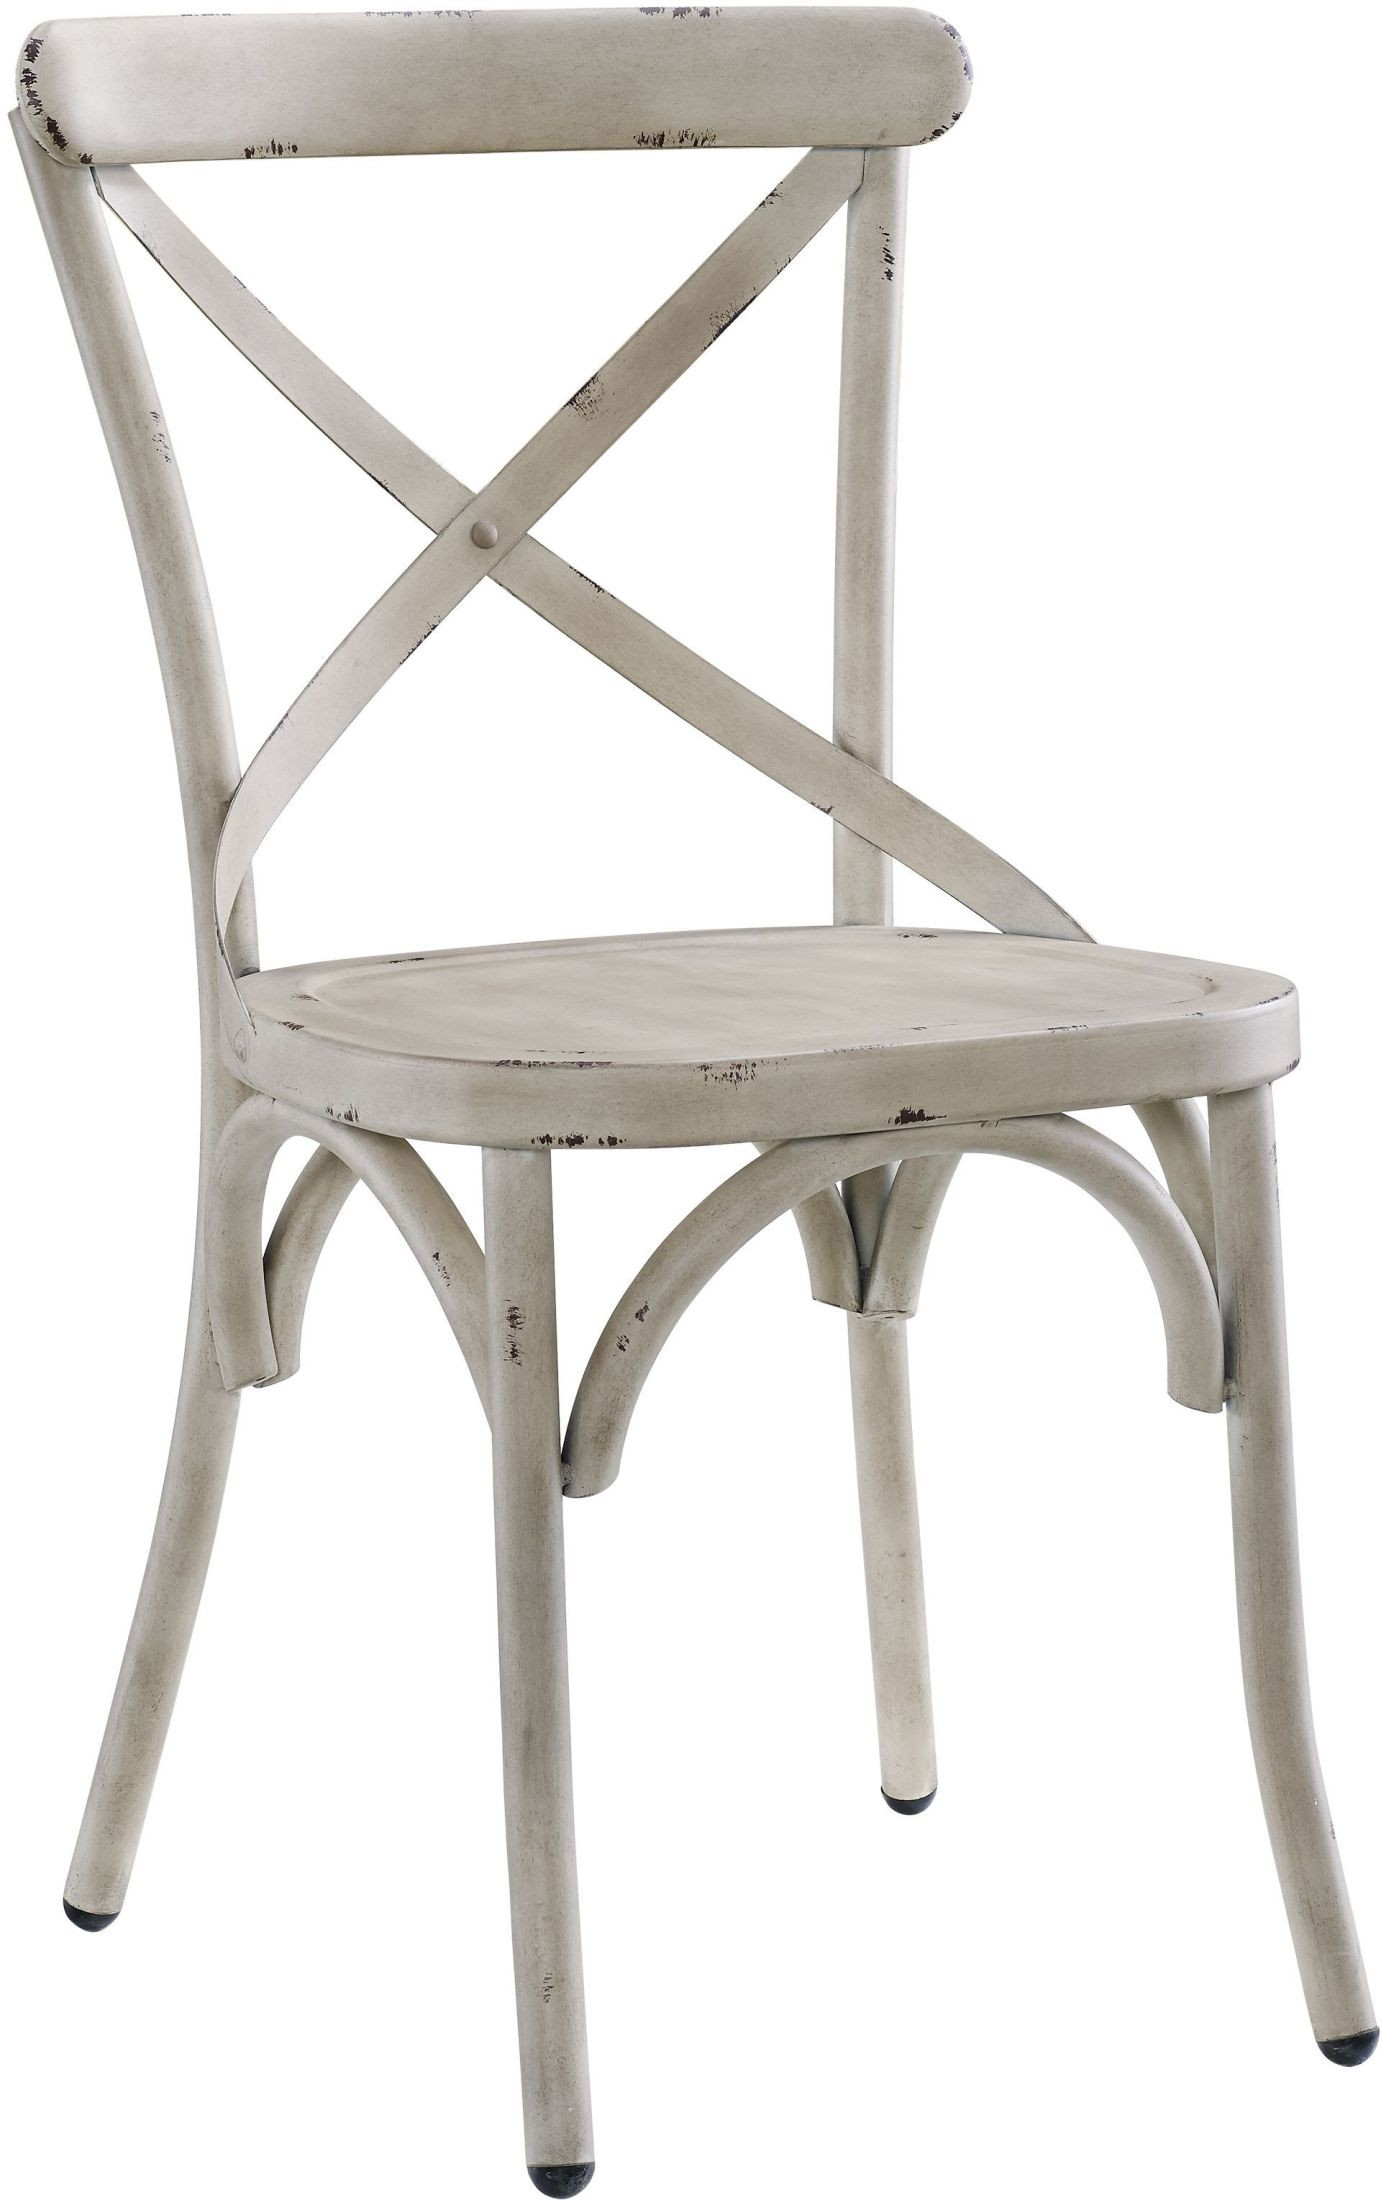 Antique White Dining Room Furniture: Distressed Antique White Metal Dining Chair Set Of 2 From